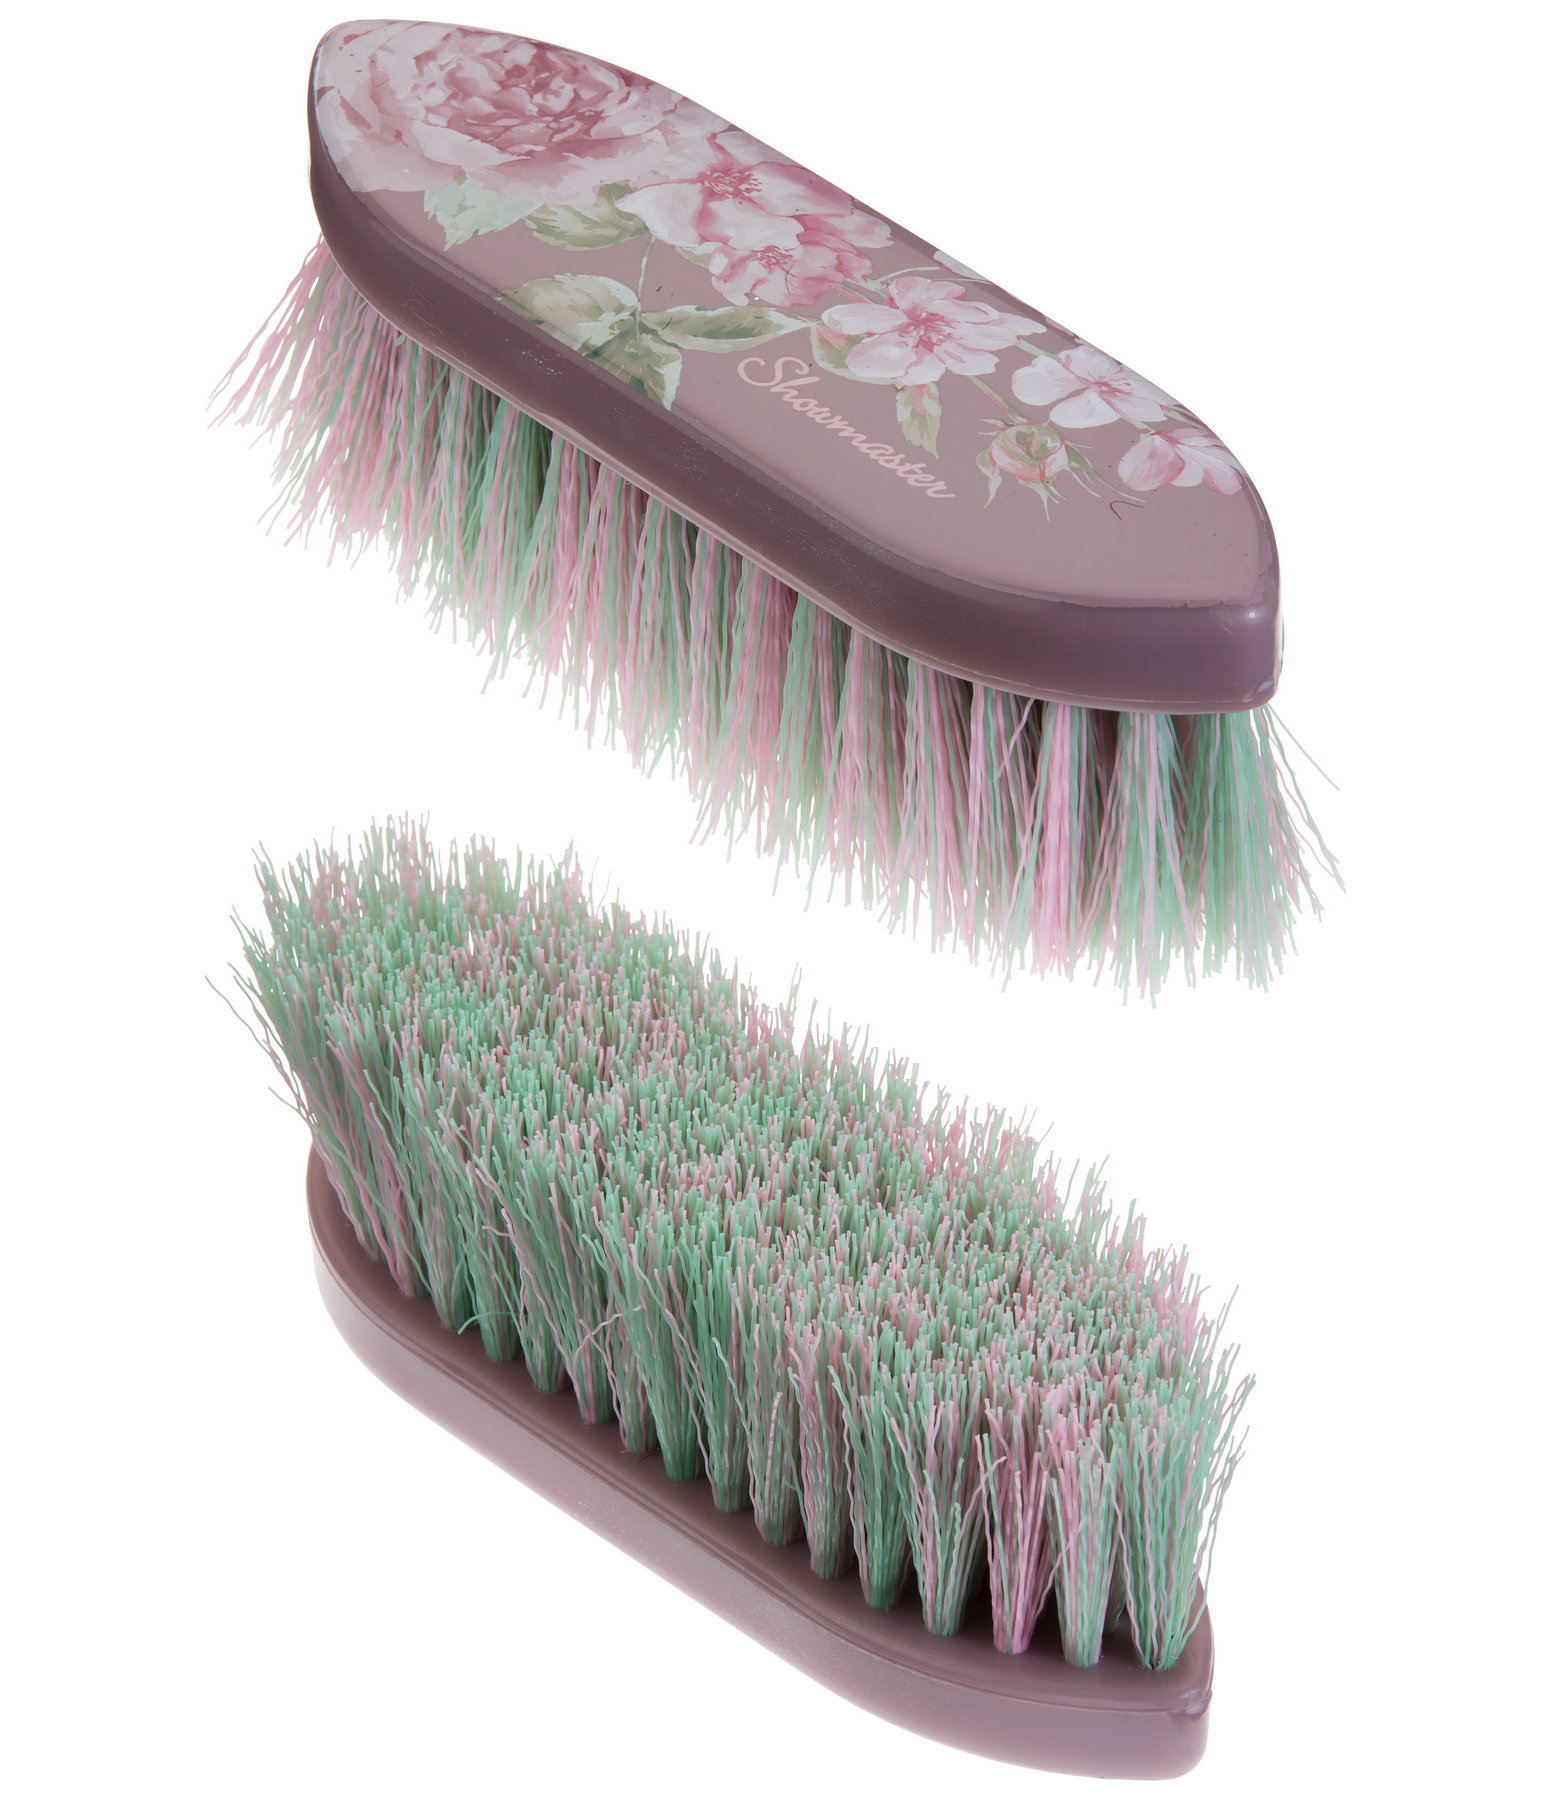 Dandy Brush Vintage Blossom